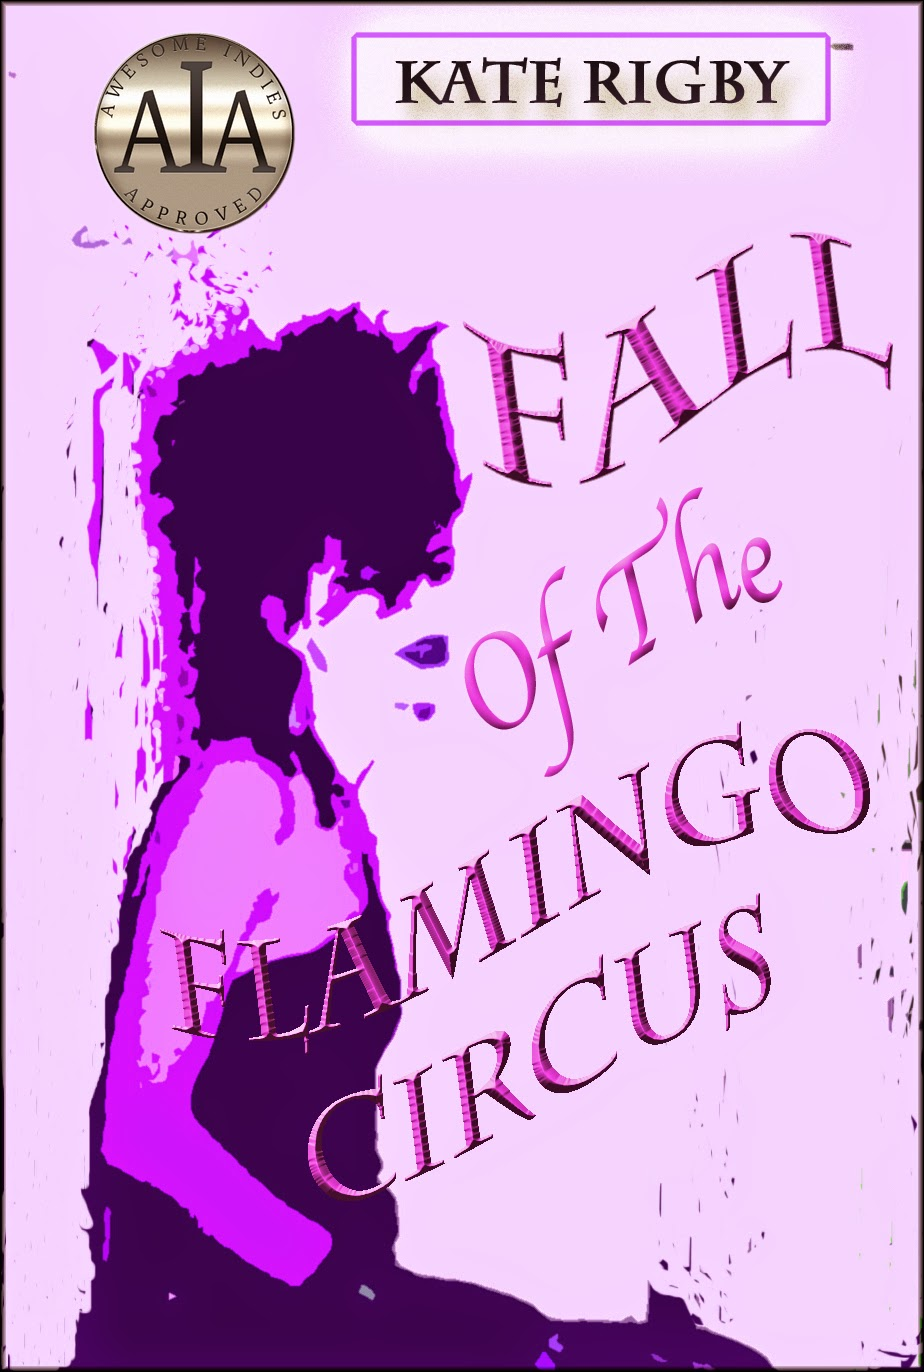 Fall Of The Flamingo Circus